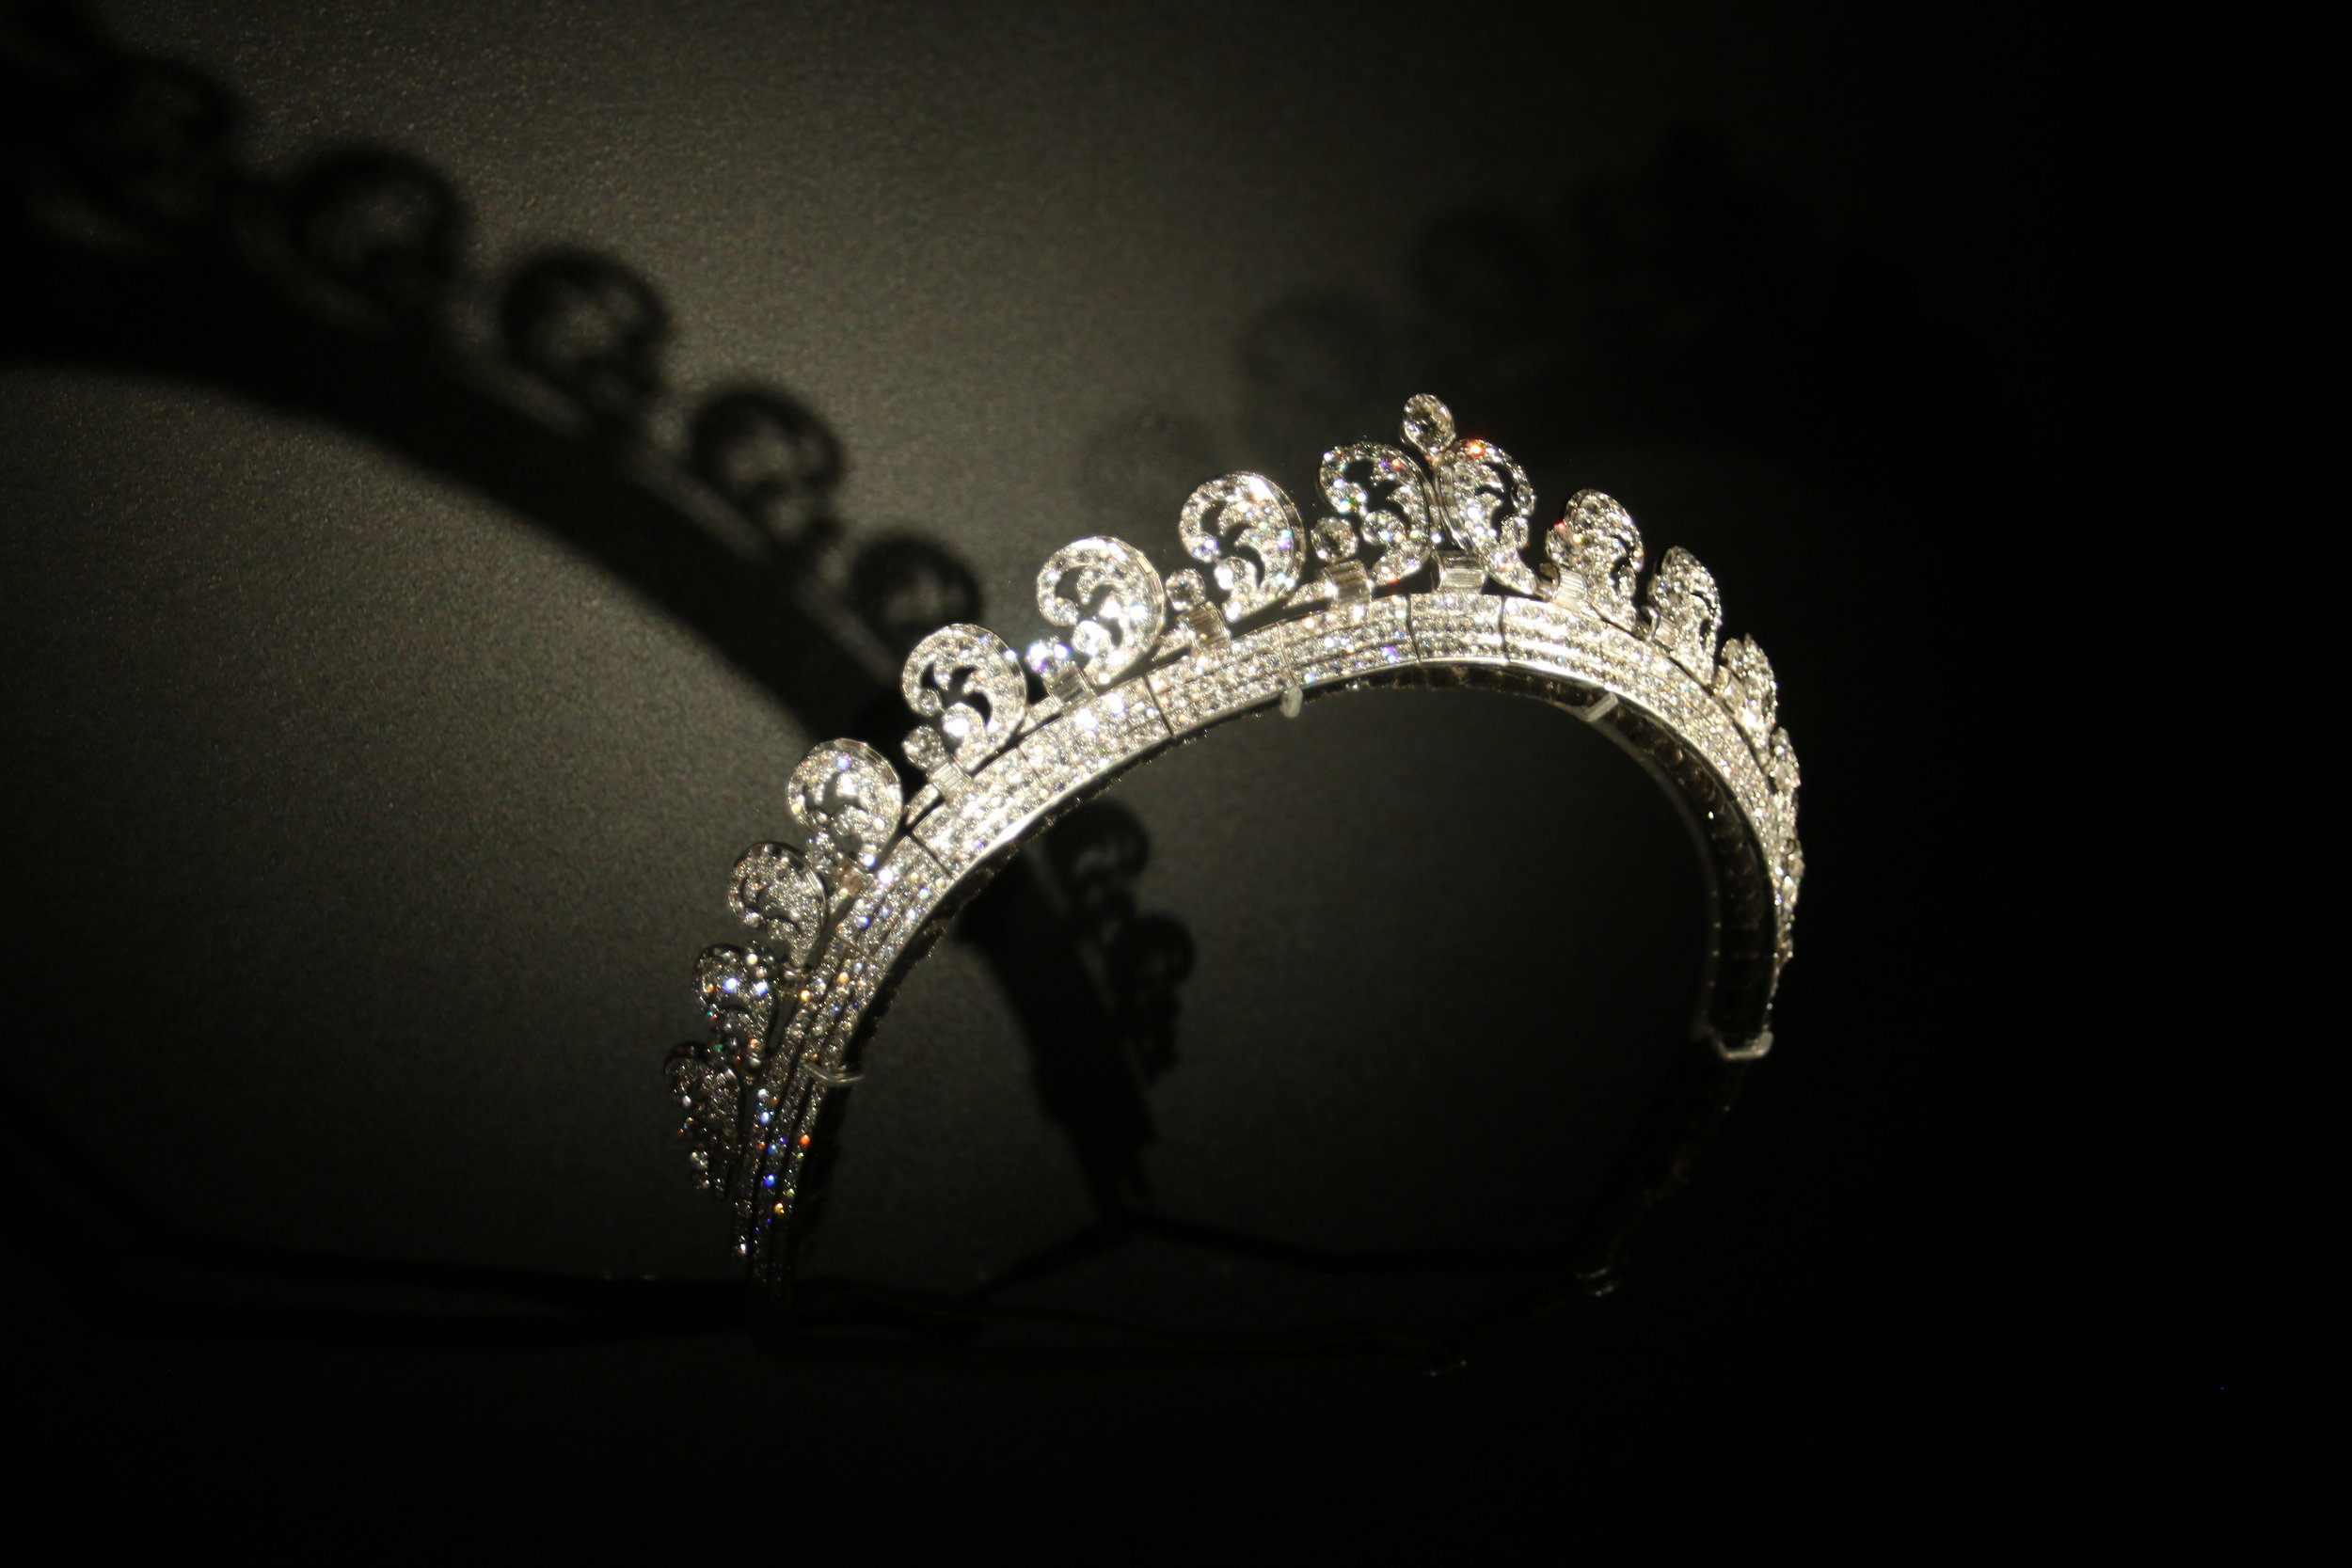 Catherine, Duchess of Cambridge crown from her wedding to Prince William, Duke of Cambridge